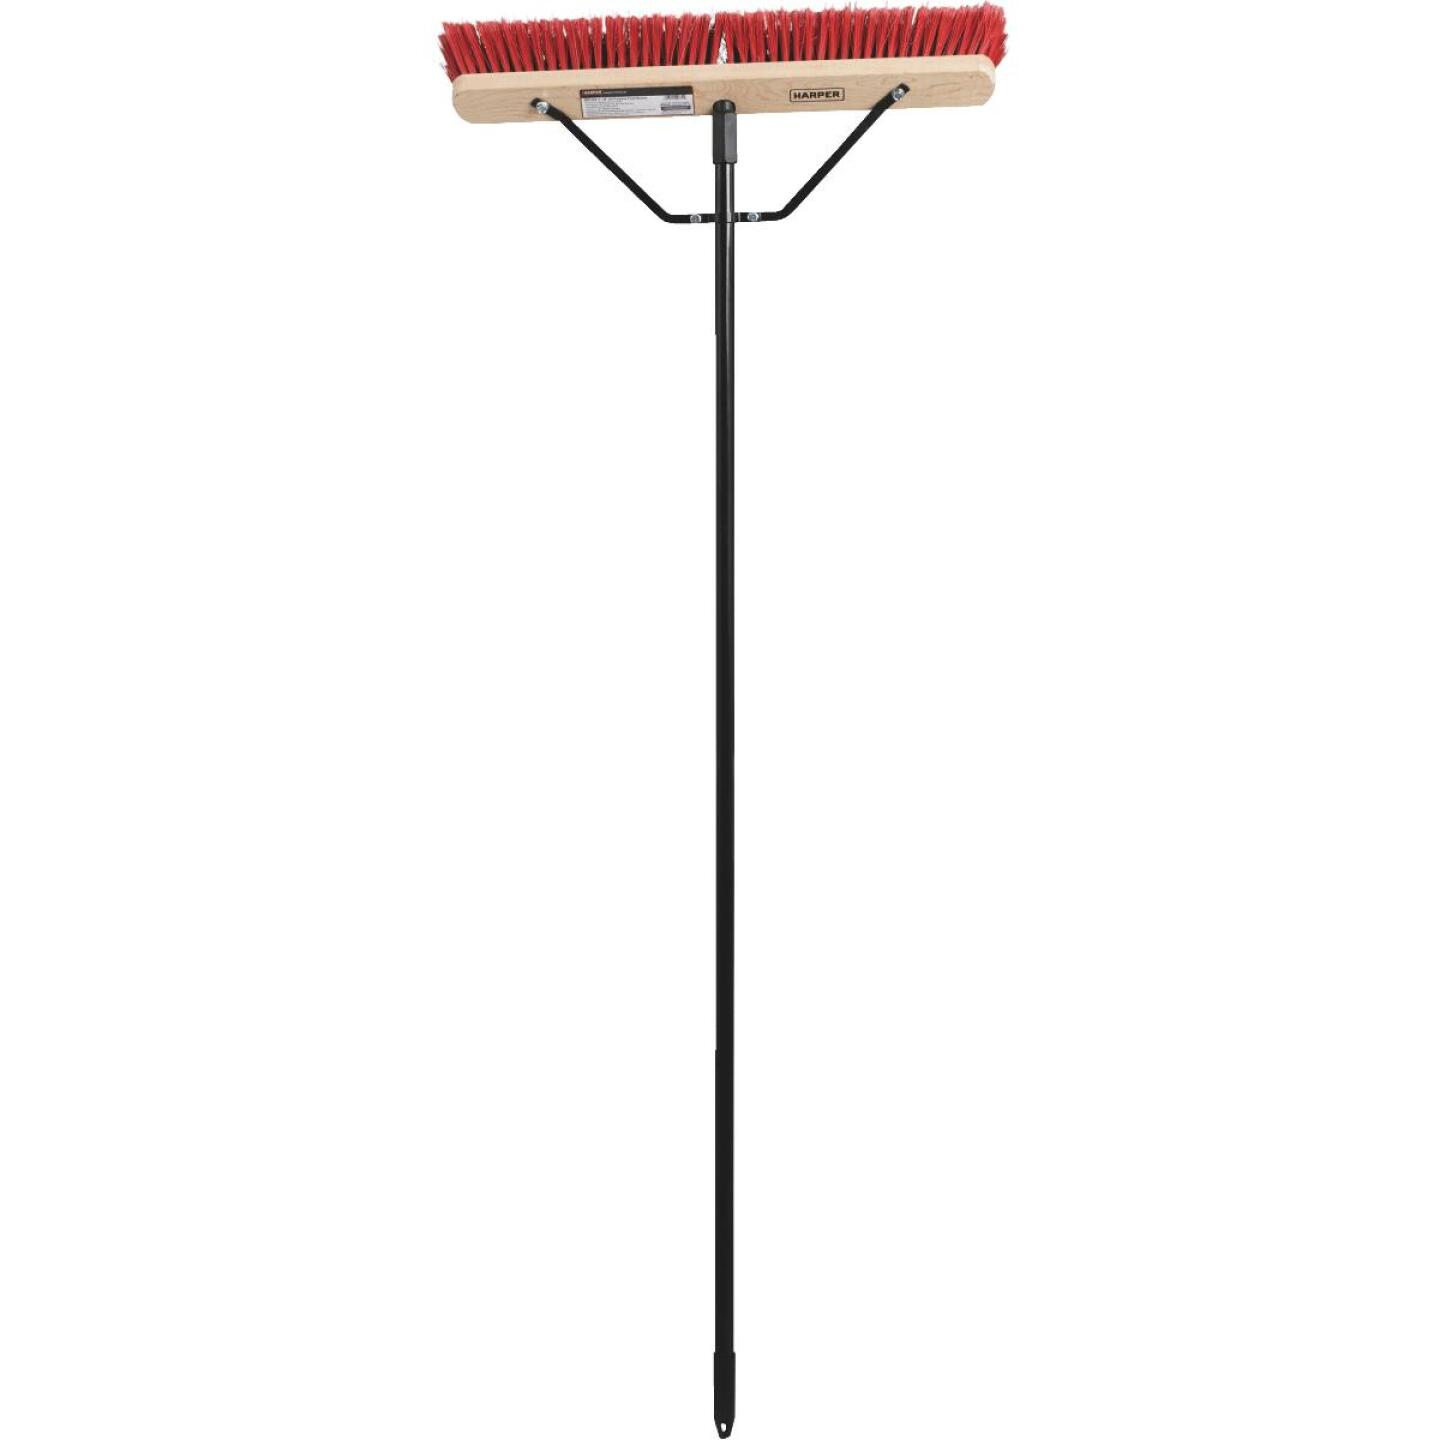 Harper 24 In. Red Bordered Indoor/Outdoor Block Push Broom with Steel Brace Image 2